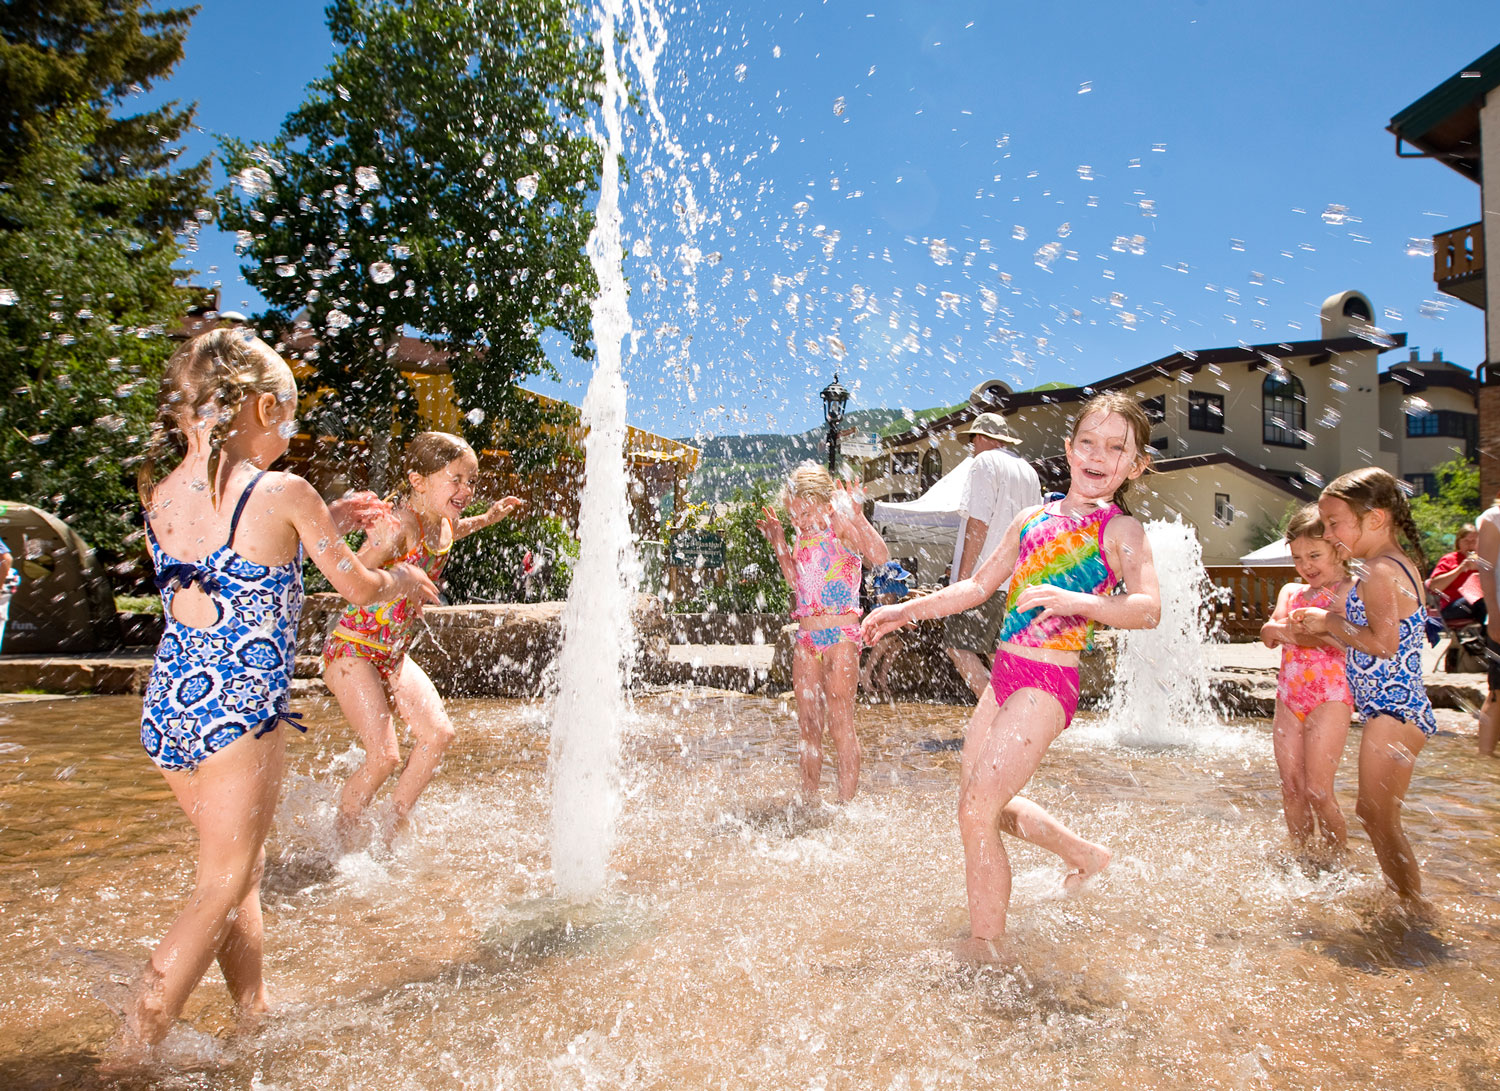 Kids splashing in the Vail children's fountain, one of the fun things to do in summer